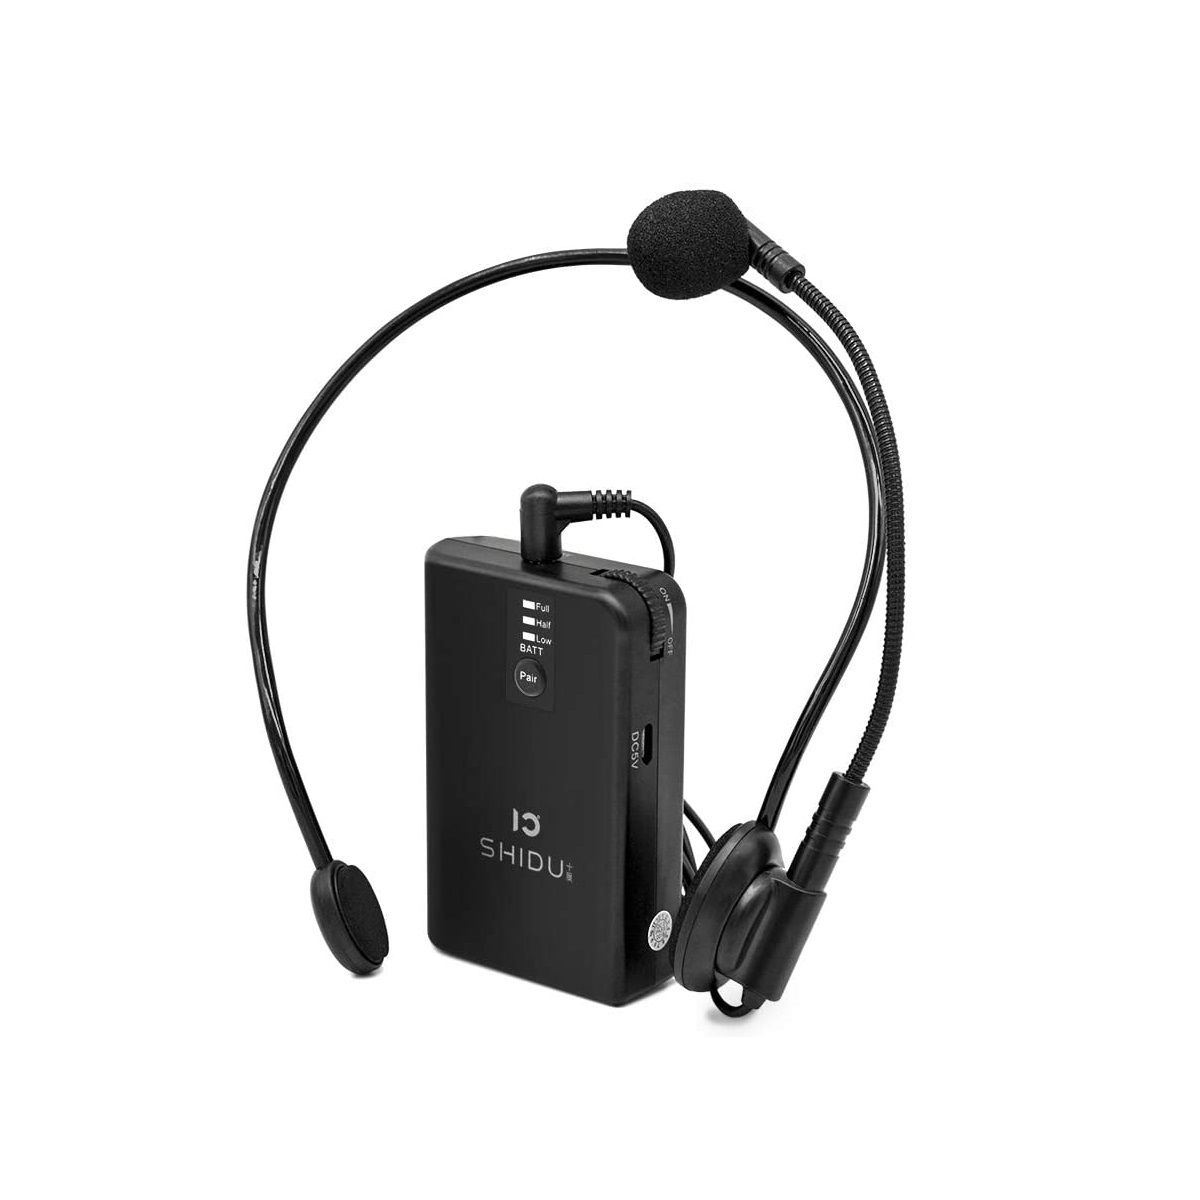 Picture for category Headset Wireless Microphone Sys